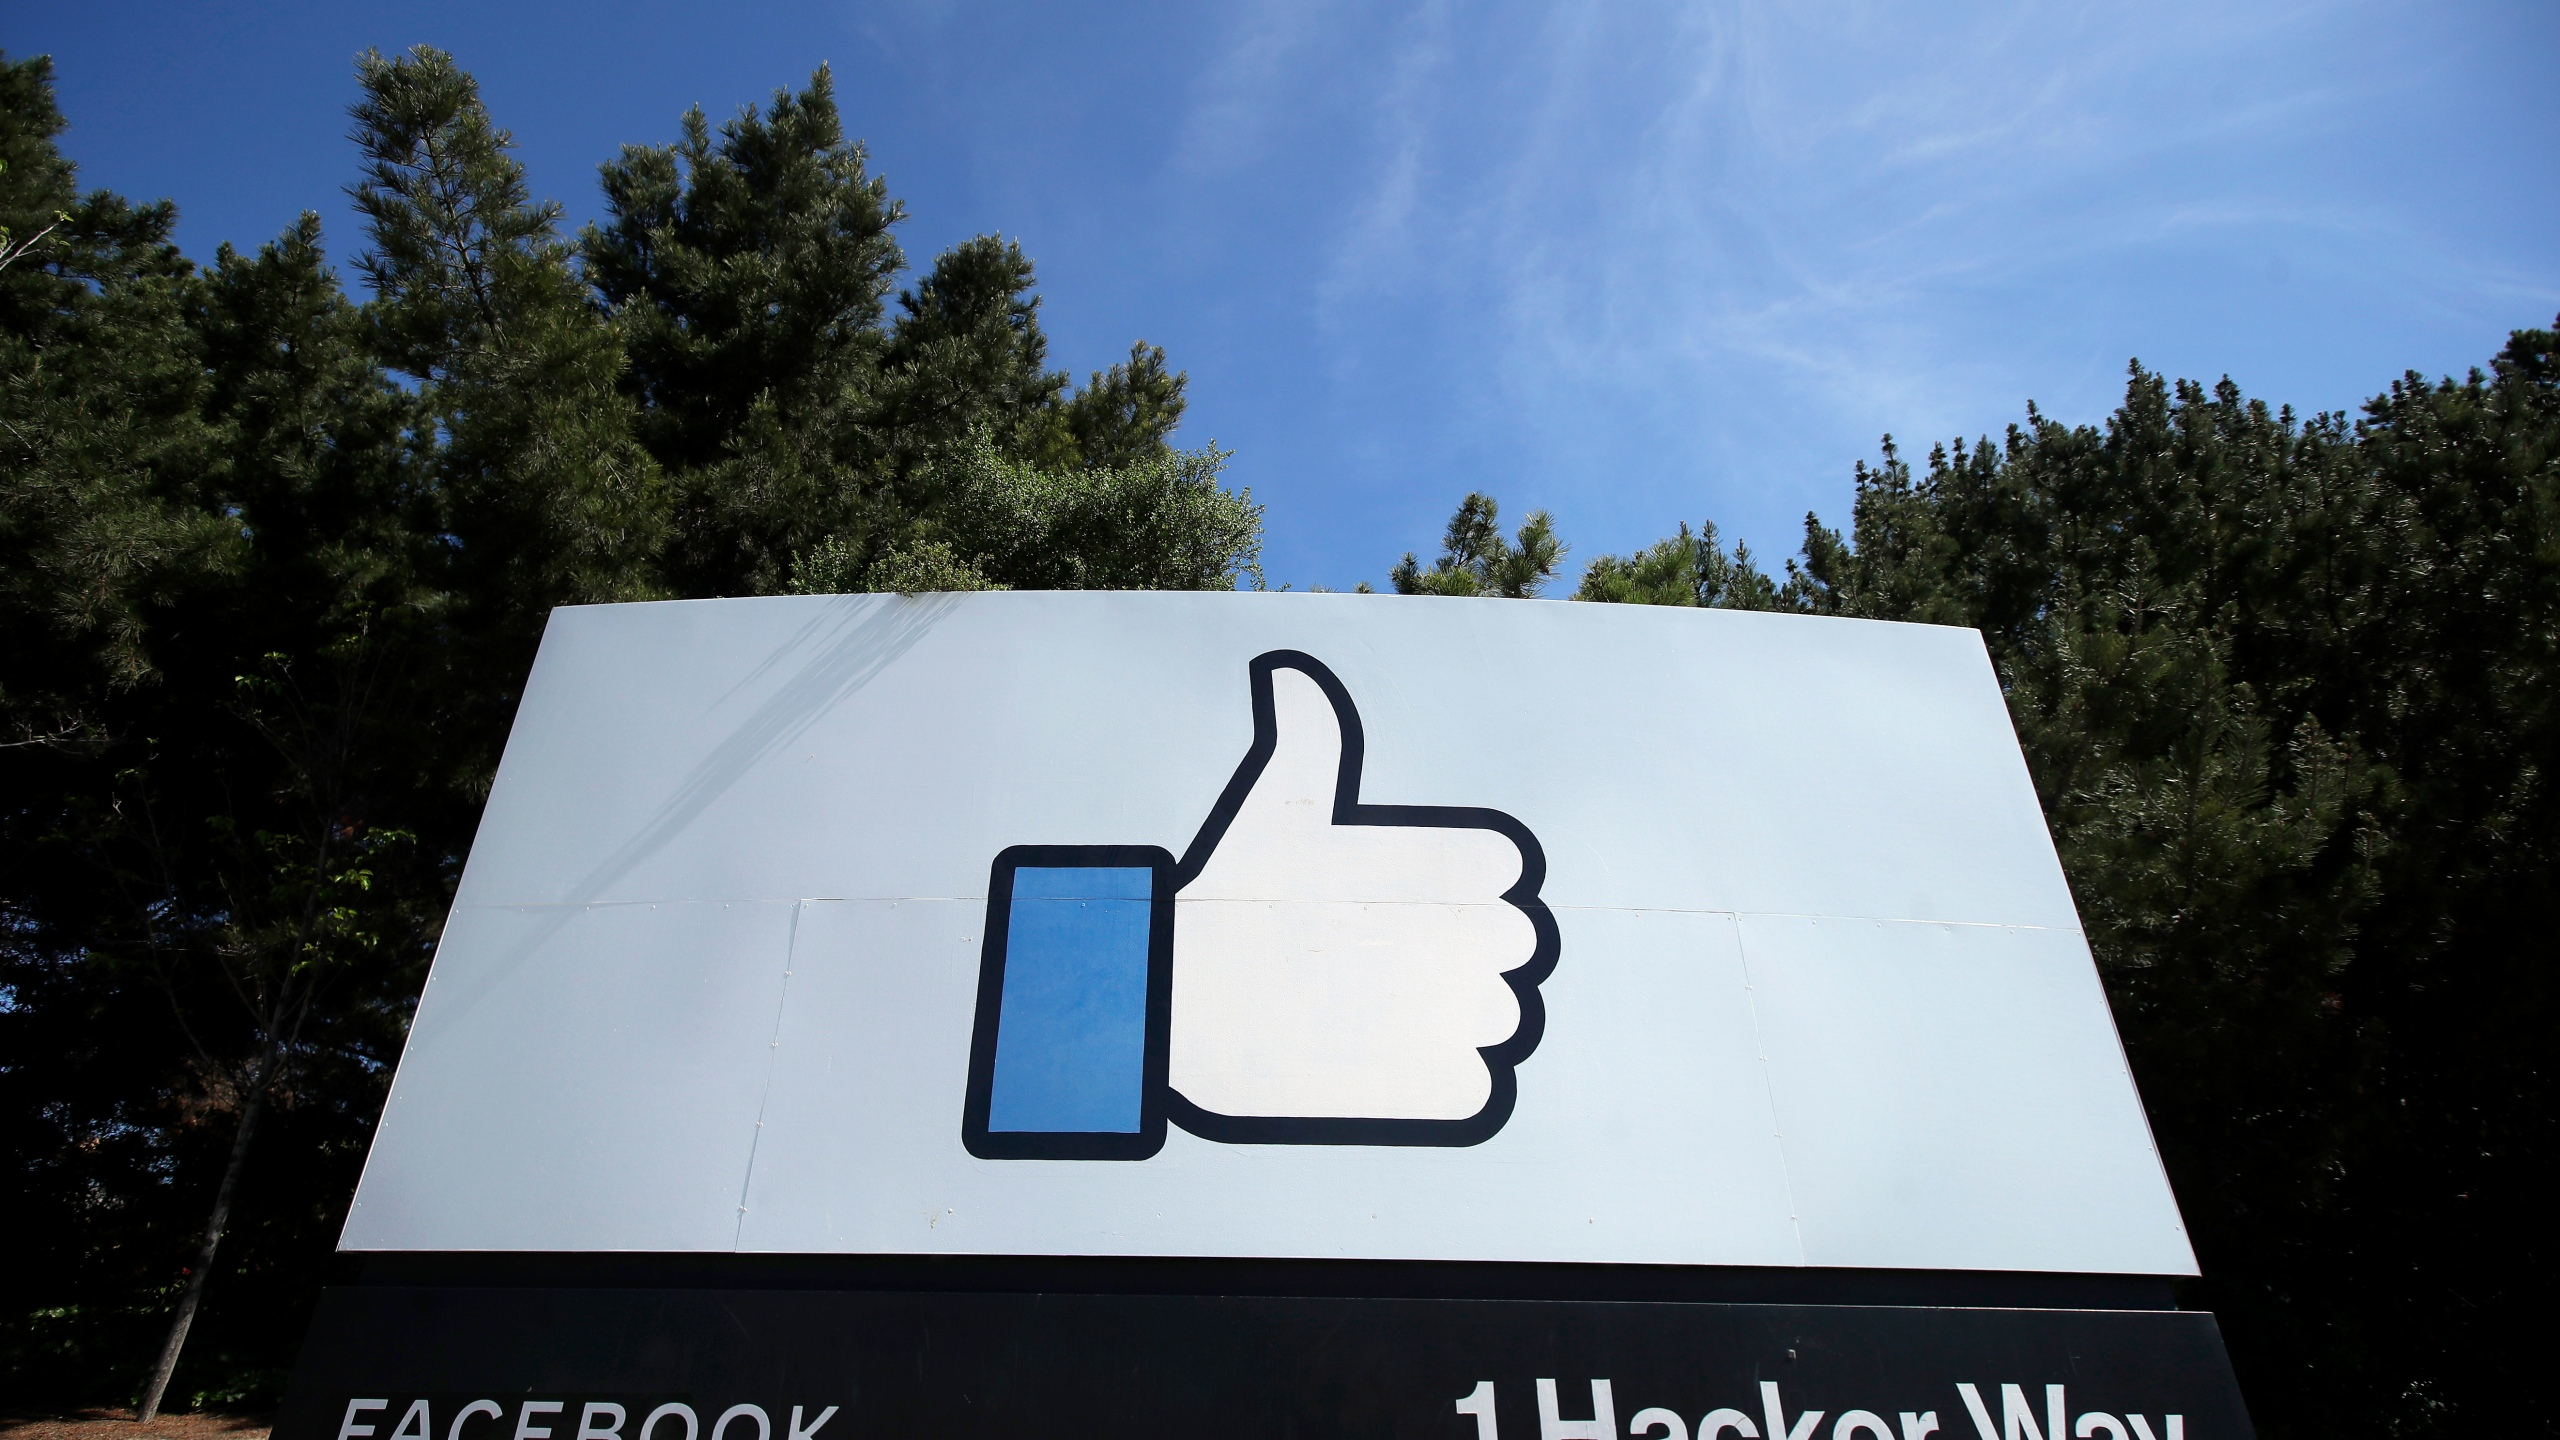 FILE - In this April 14, 2020 file photo, the thumbs up Like logo is shown on a sign at Facebook headquarters in Menlo Park, Calif. A federal judge has dismissed antitrust lawsuits brought against Facebook by the Federal Trade Commission and a coalition of state attorneys general, dealing a significant blow to attempts by regulators to rein in tech giants. (AP Photo/Jeff Chiu, File)